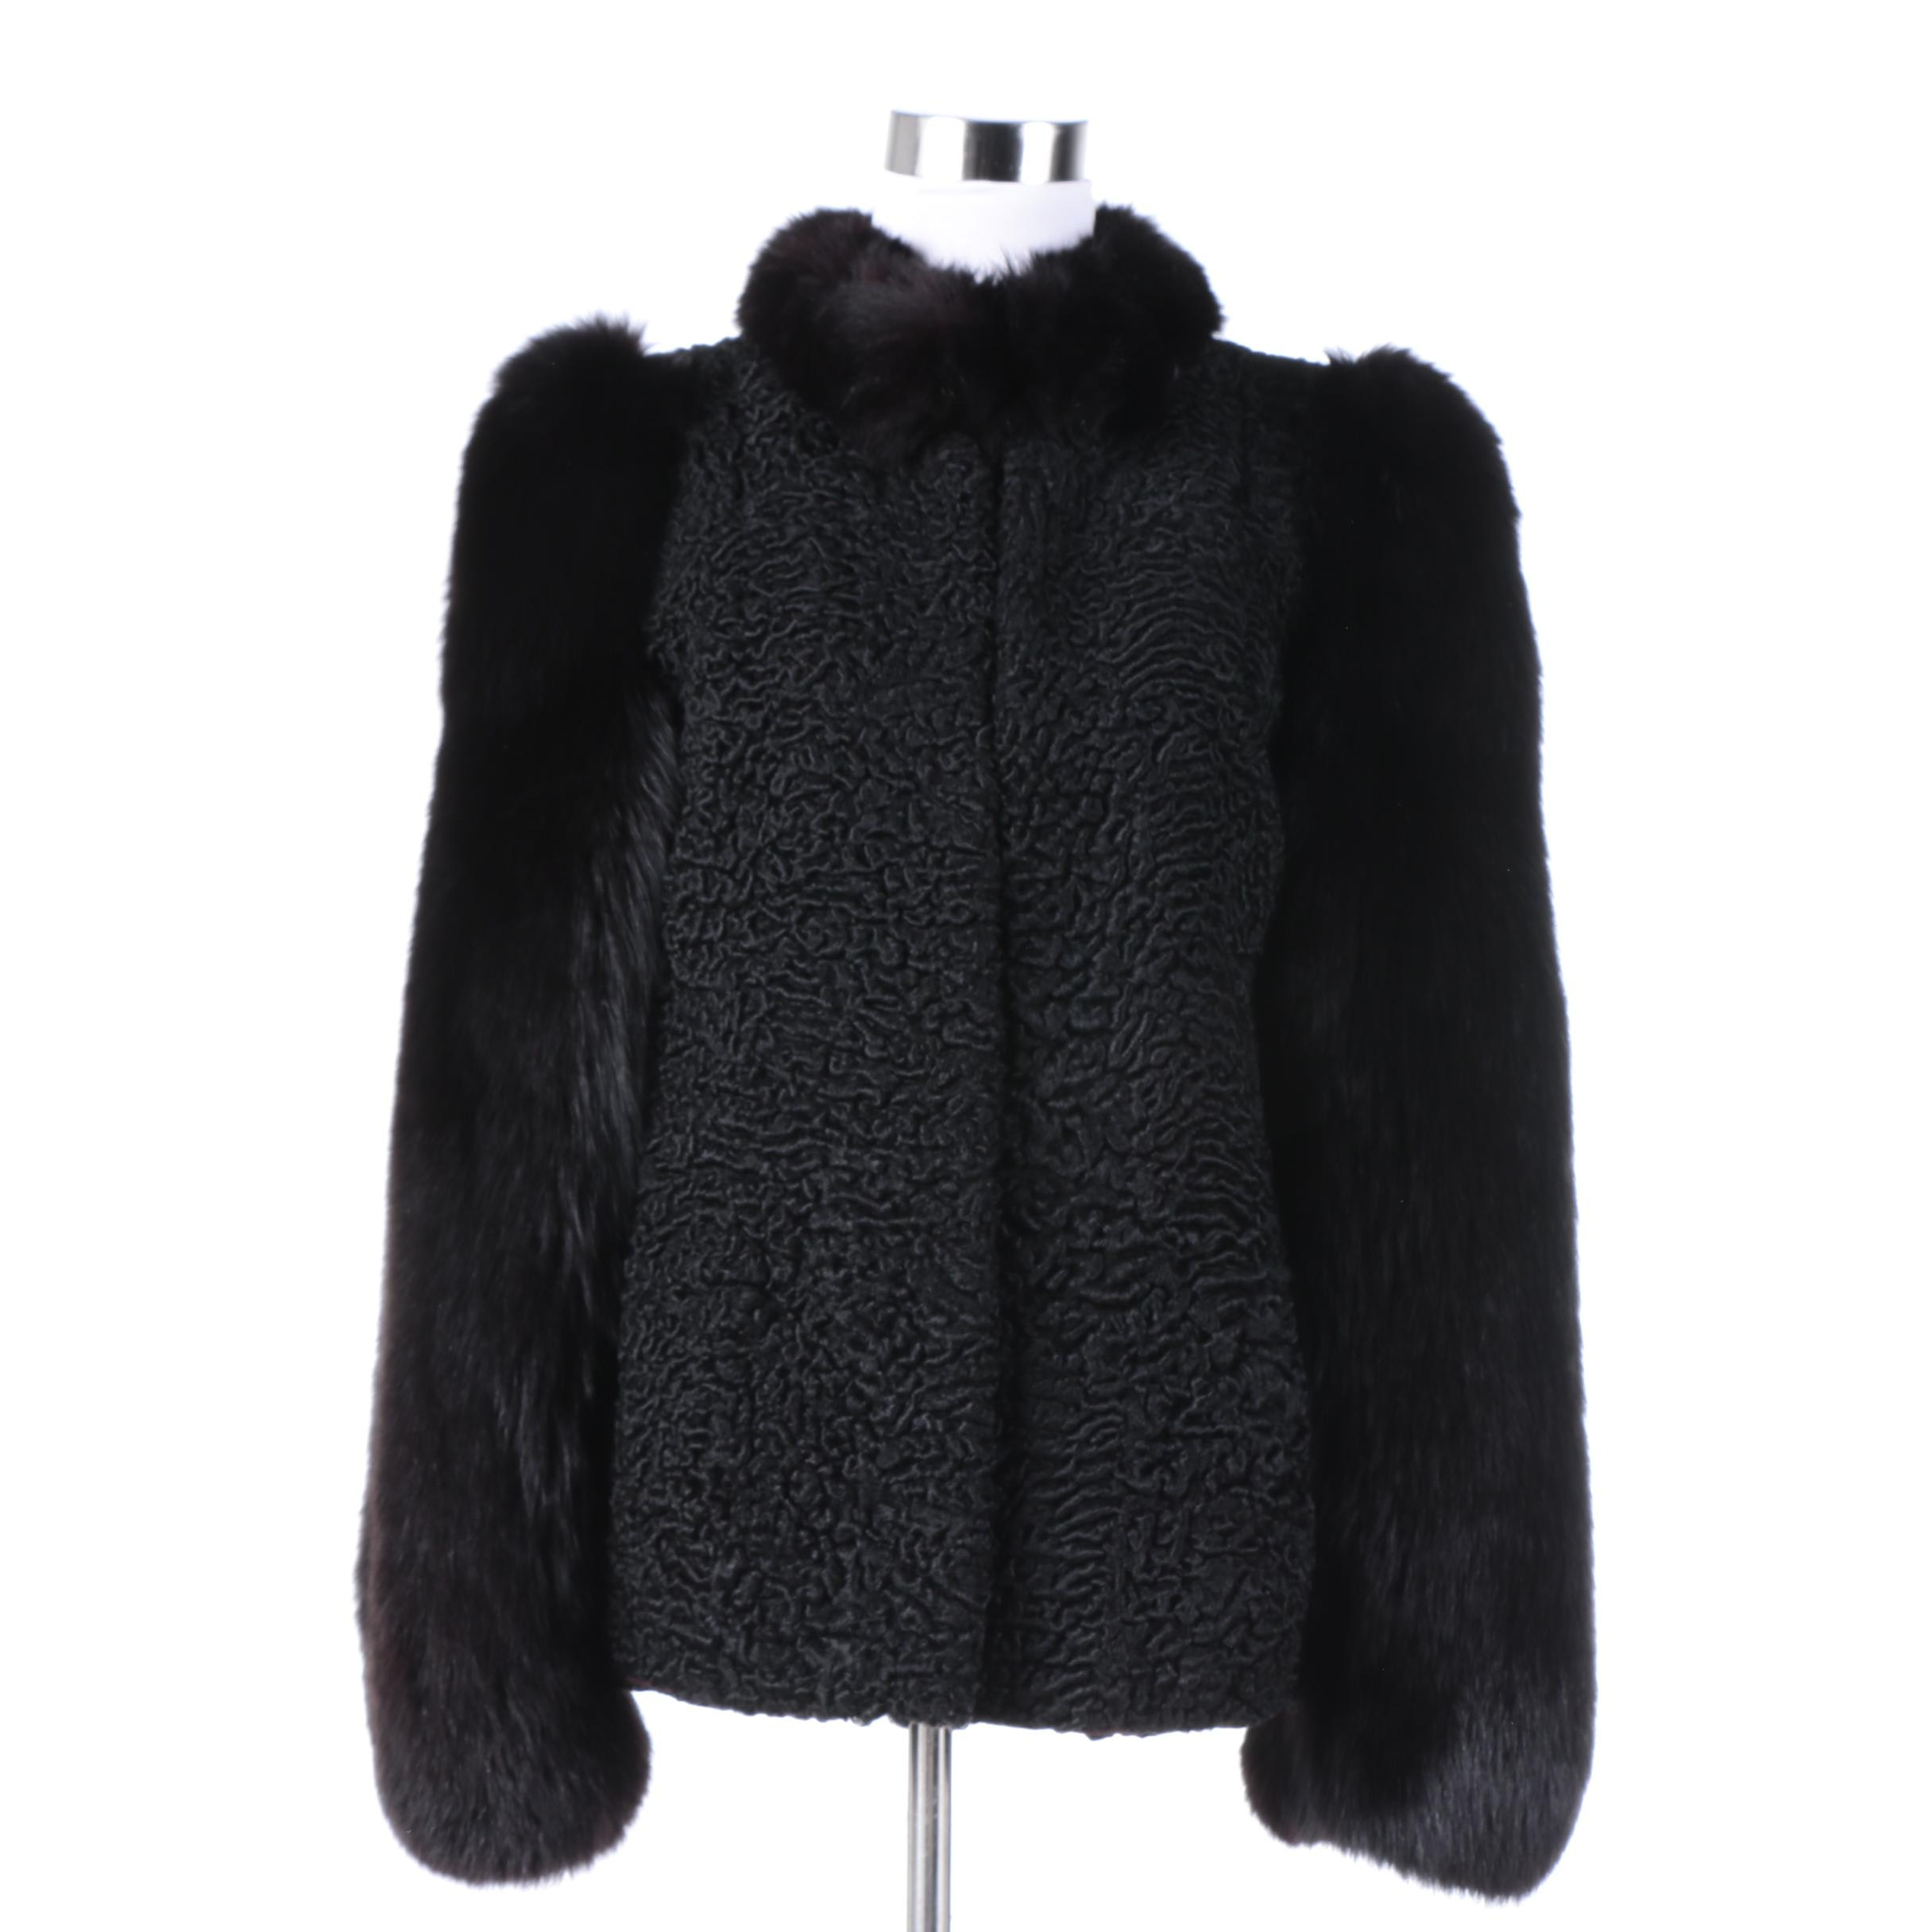 Yudofsky Persian Lamb Coat with Fox Fur Collar and Sleeves